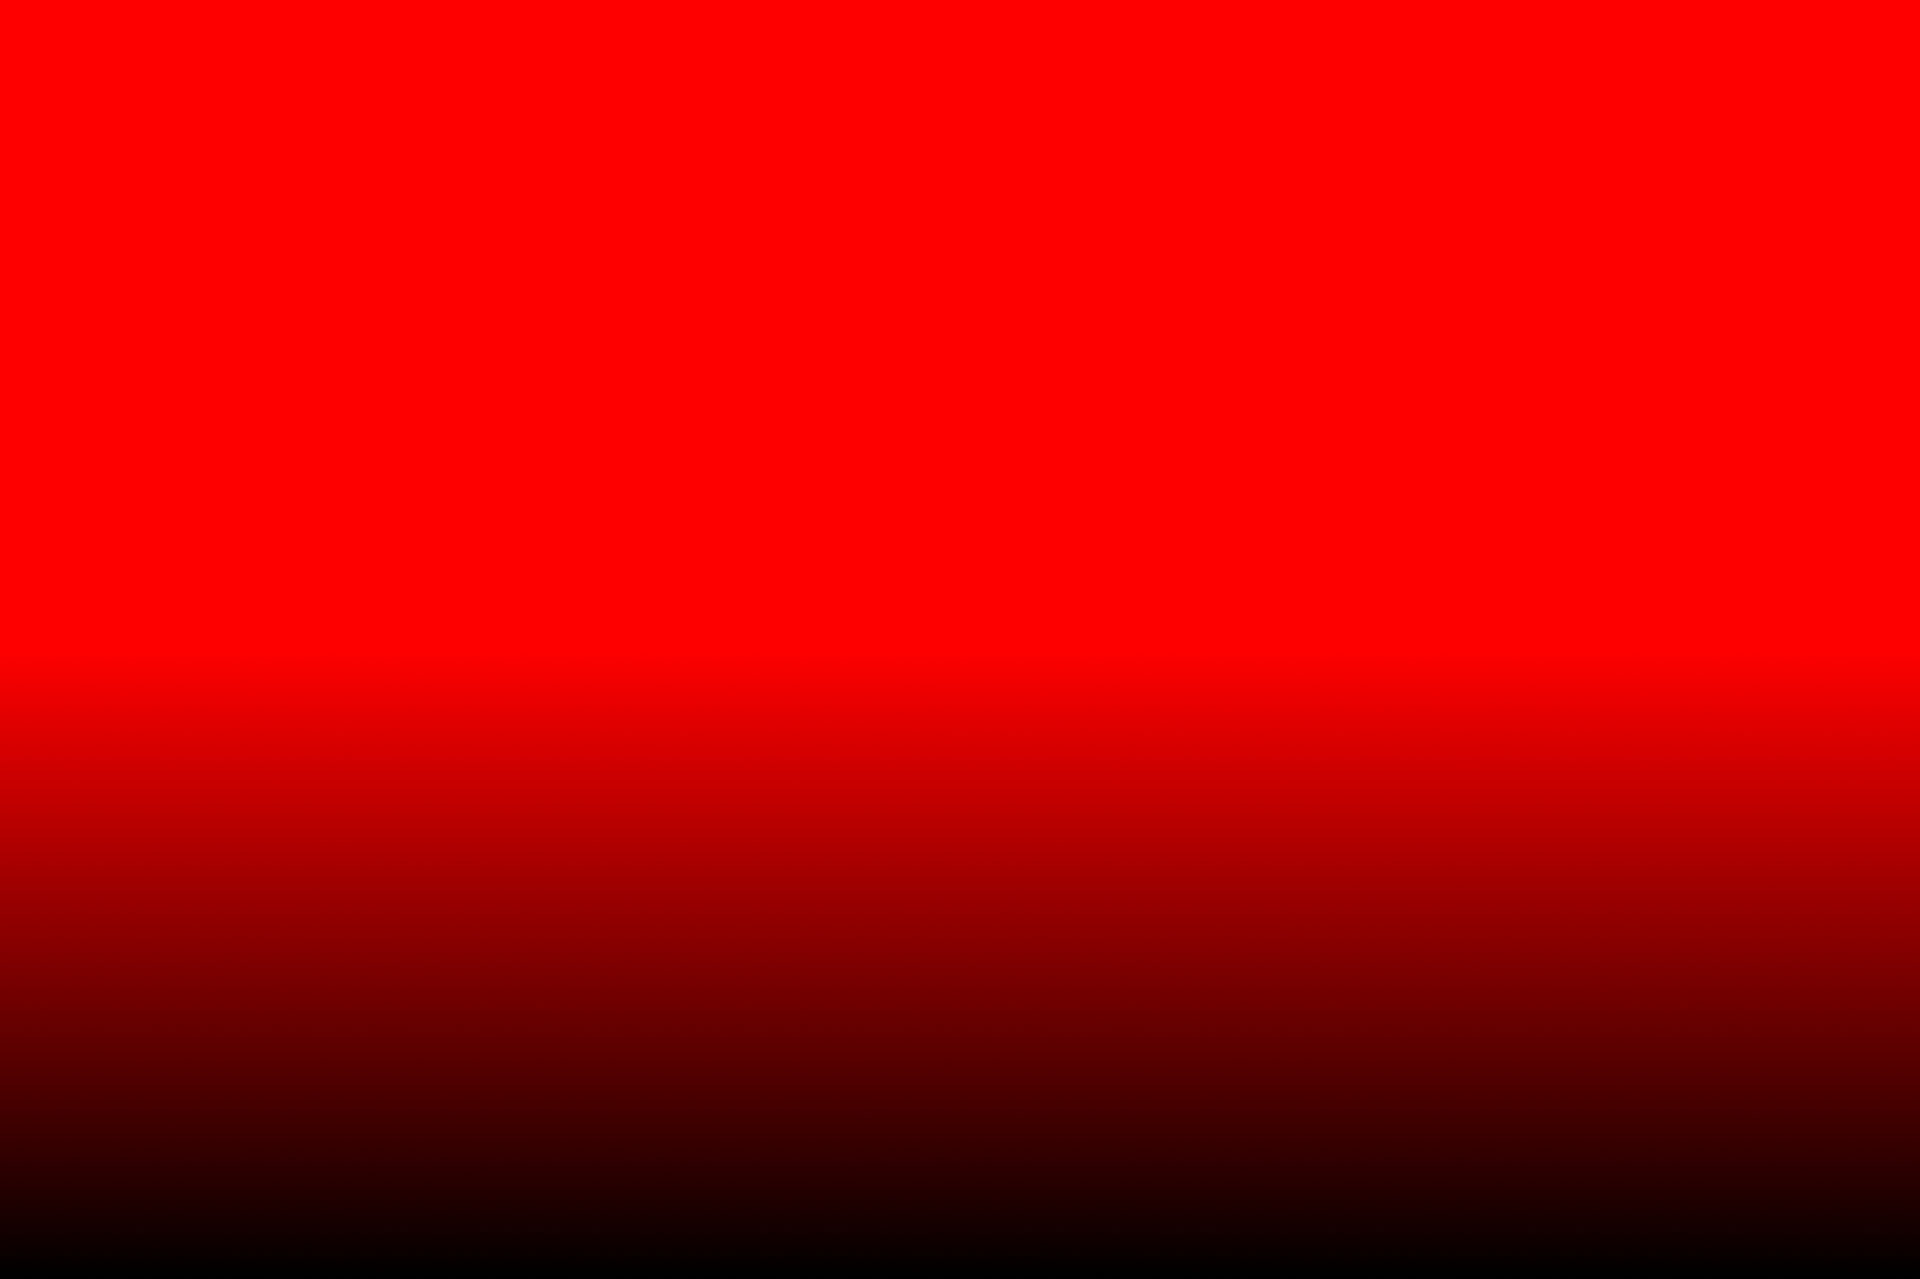 Cropped Red Wallpapers Picture For Desktop Wallpaper Jpg Optical Microsystems Laboratory